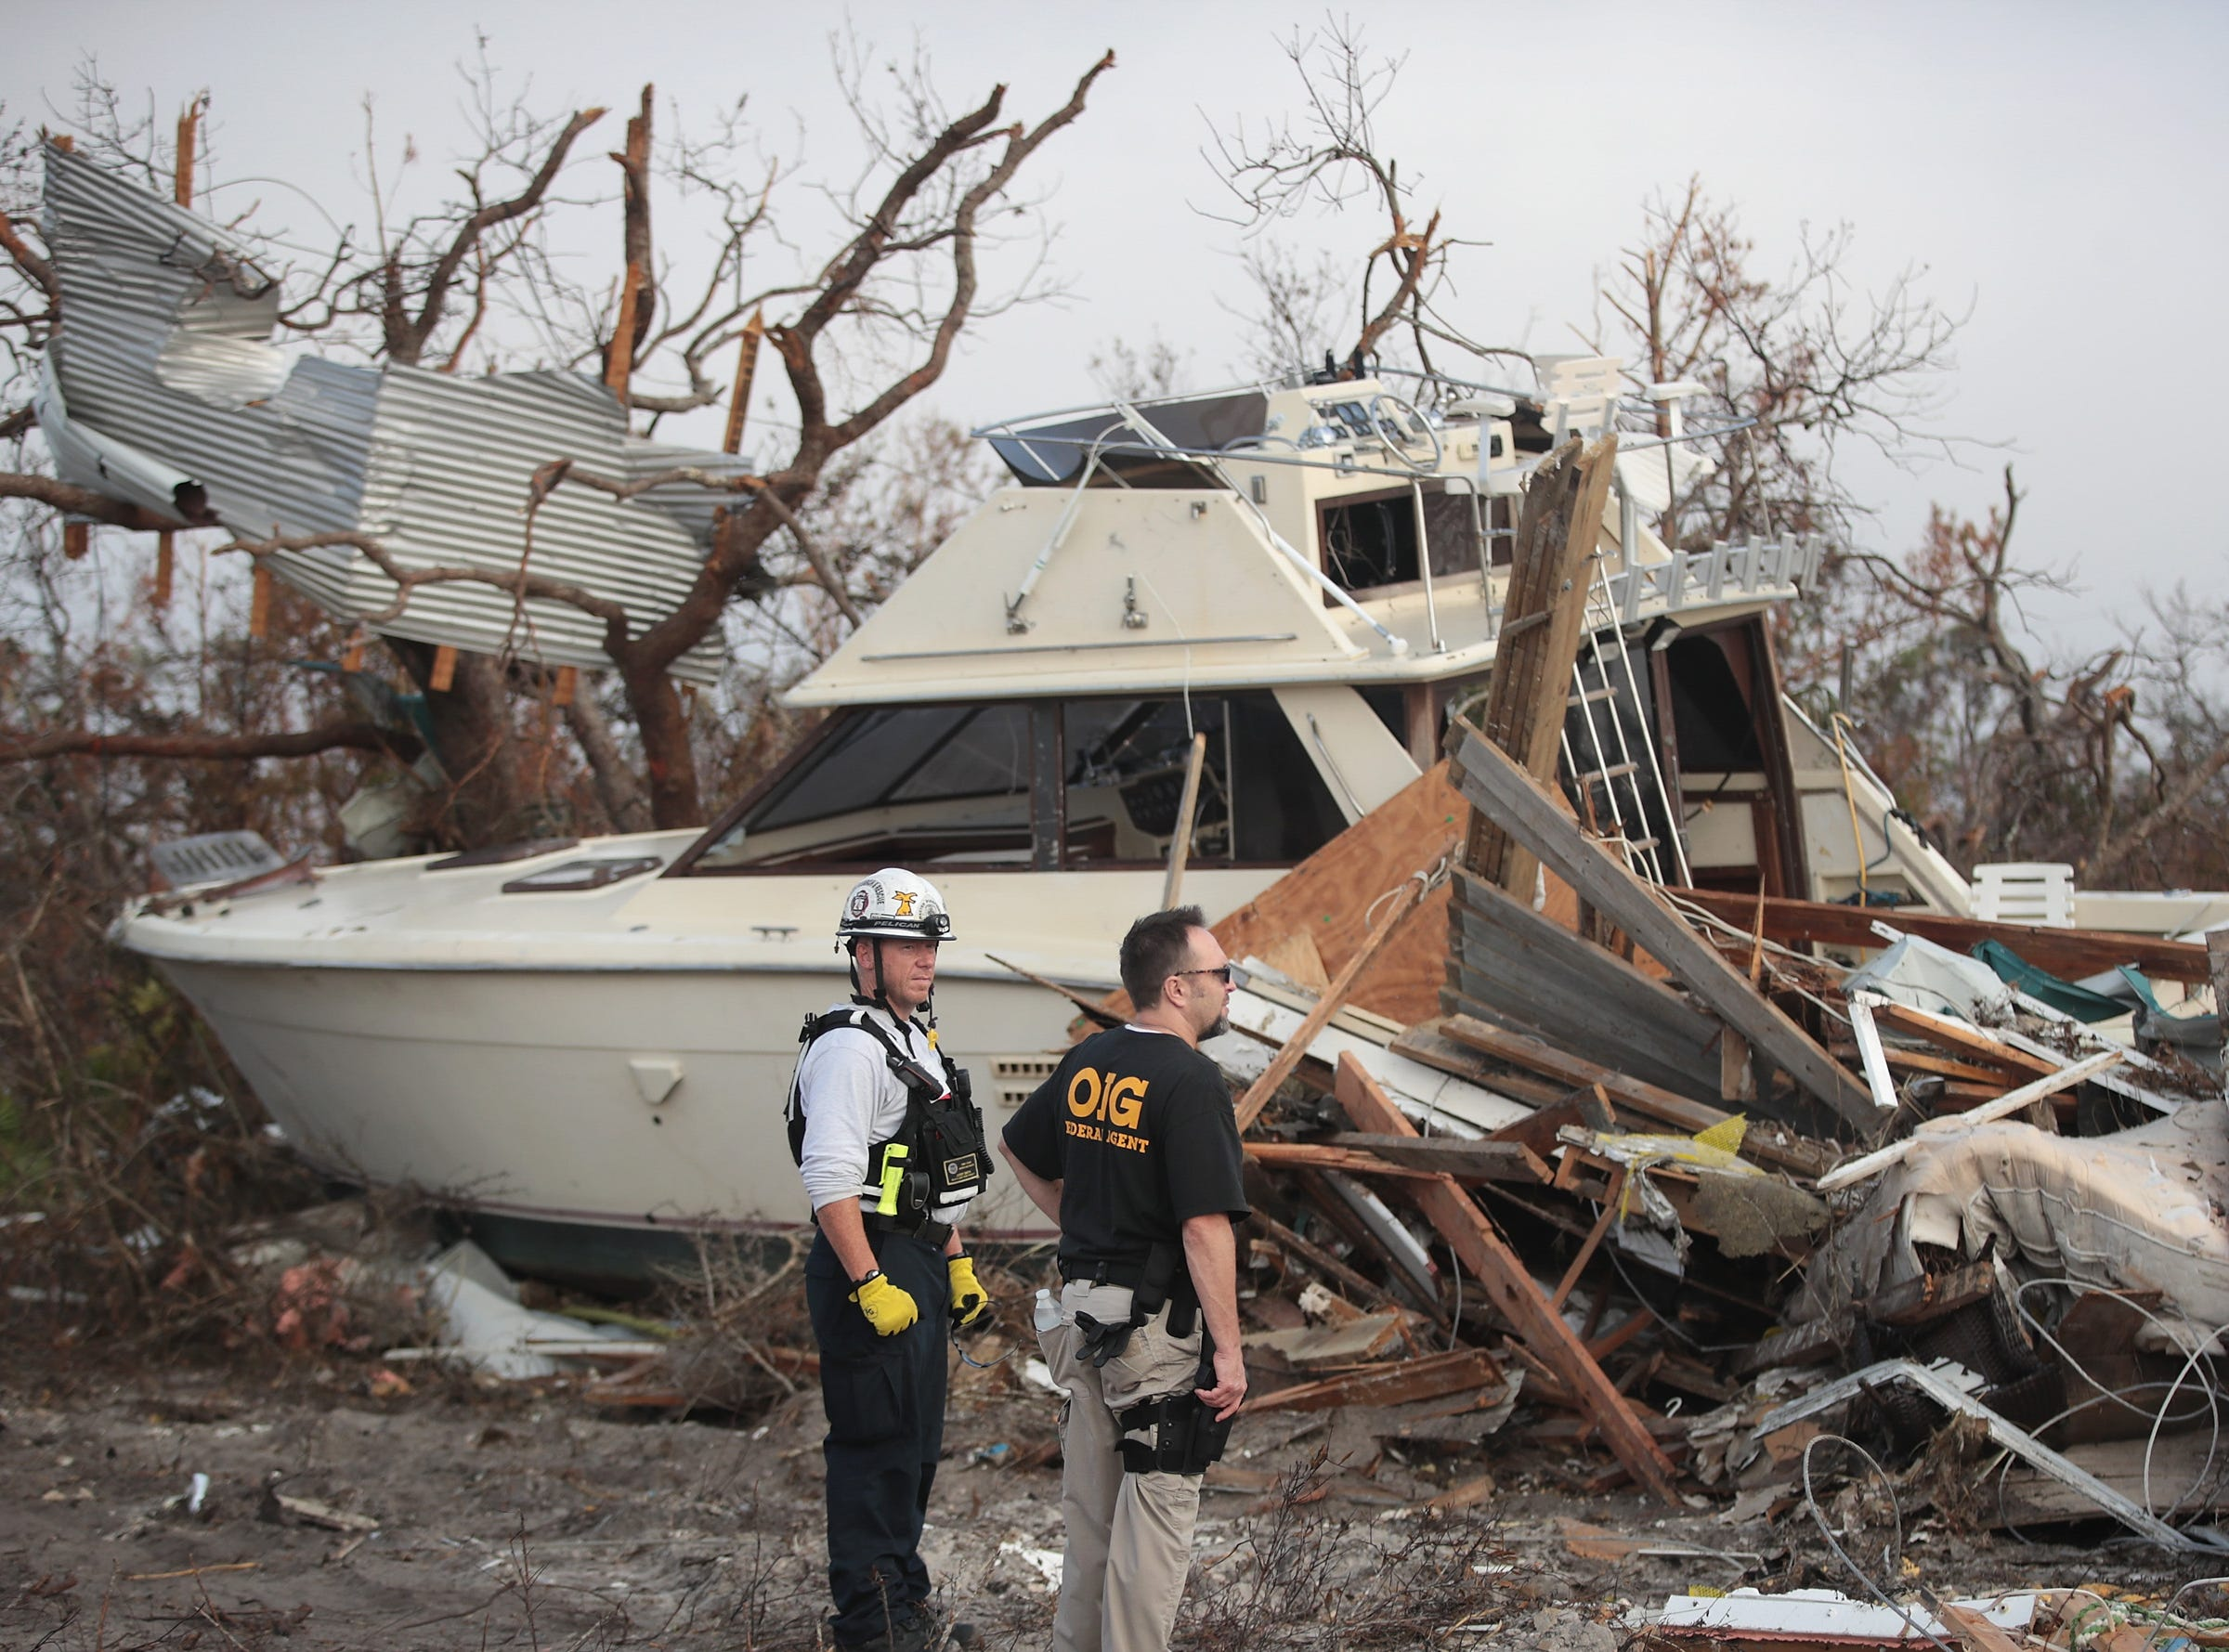 Members of the Maryland Task Force urban search and rescue team continue to search for victims of Hurricane Michael on Oct. 16, 2018 in Mexico Beach, Fla.